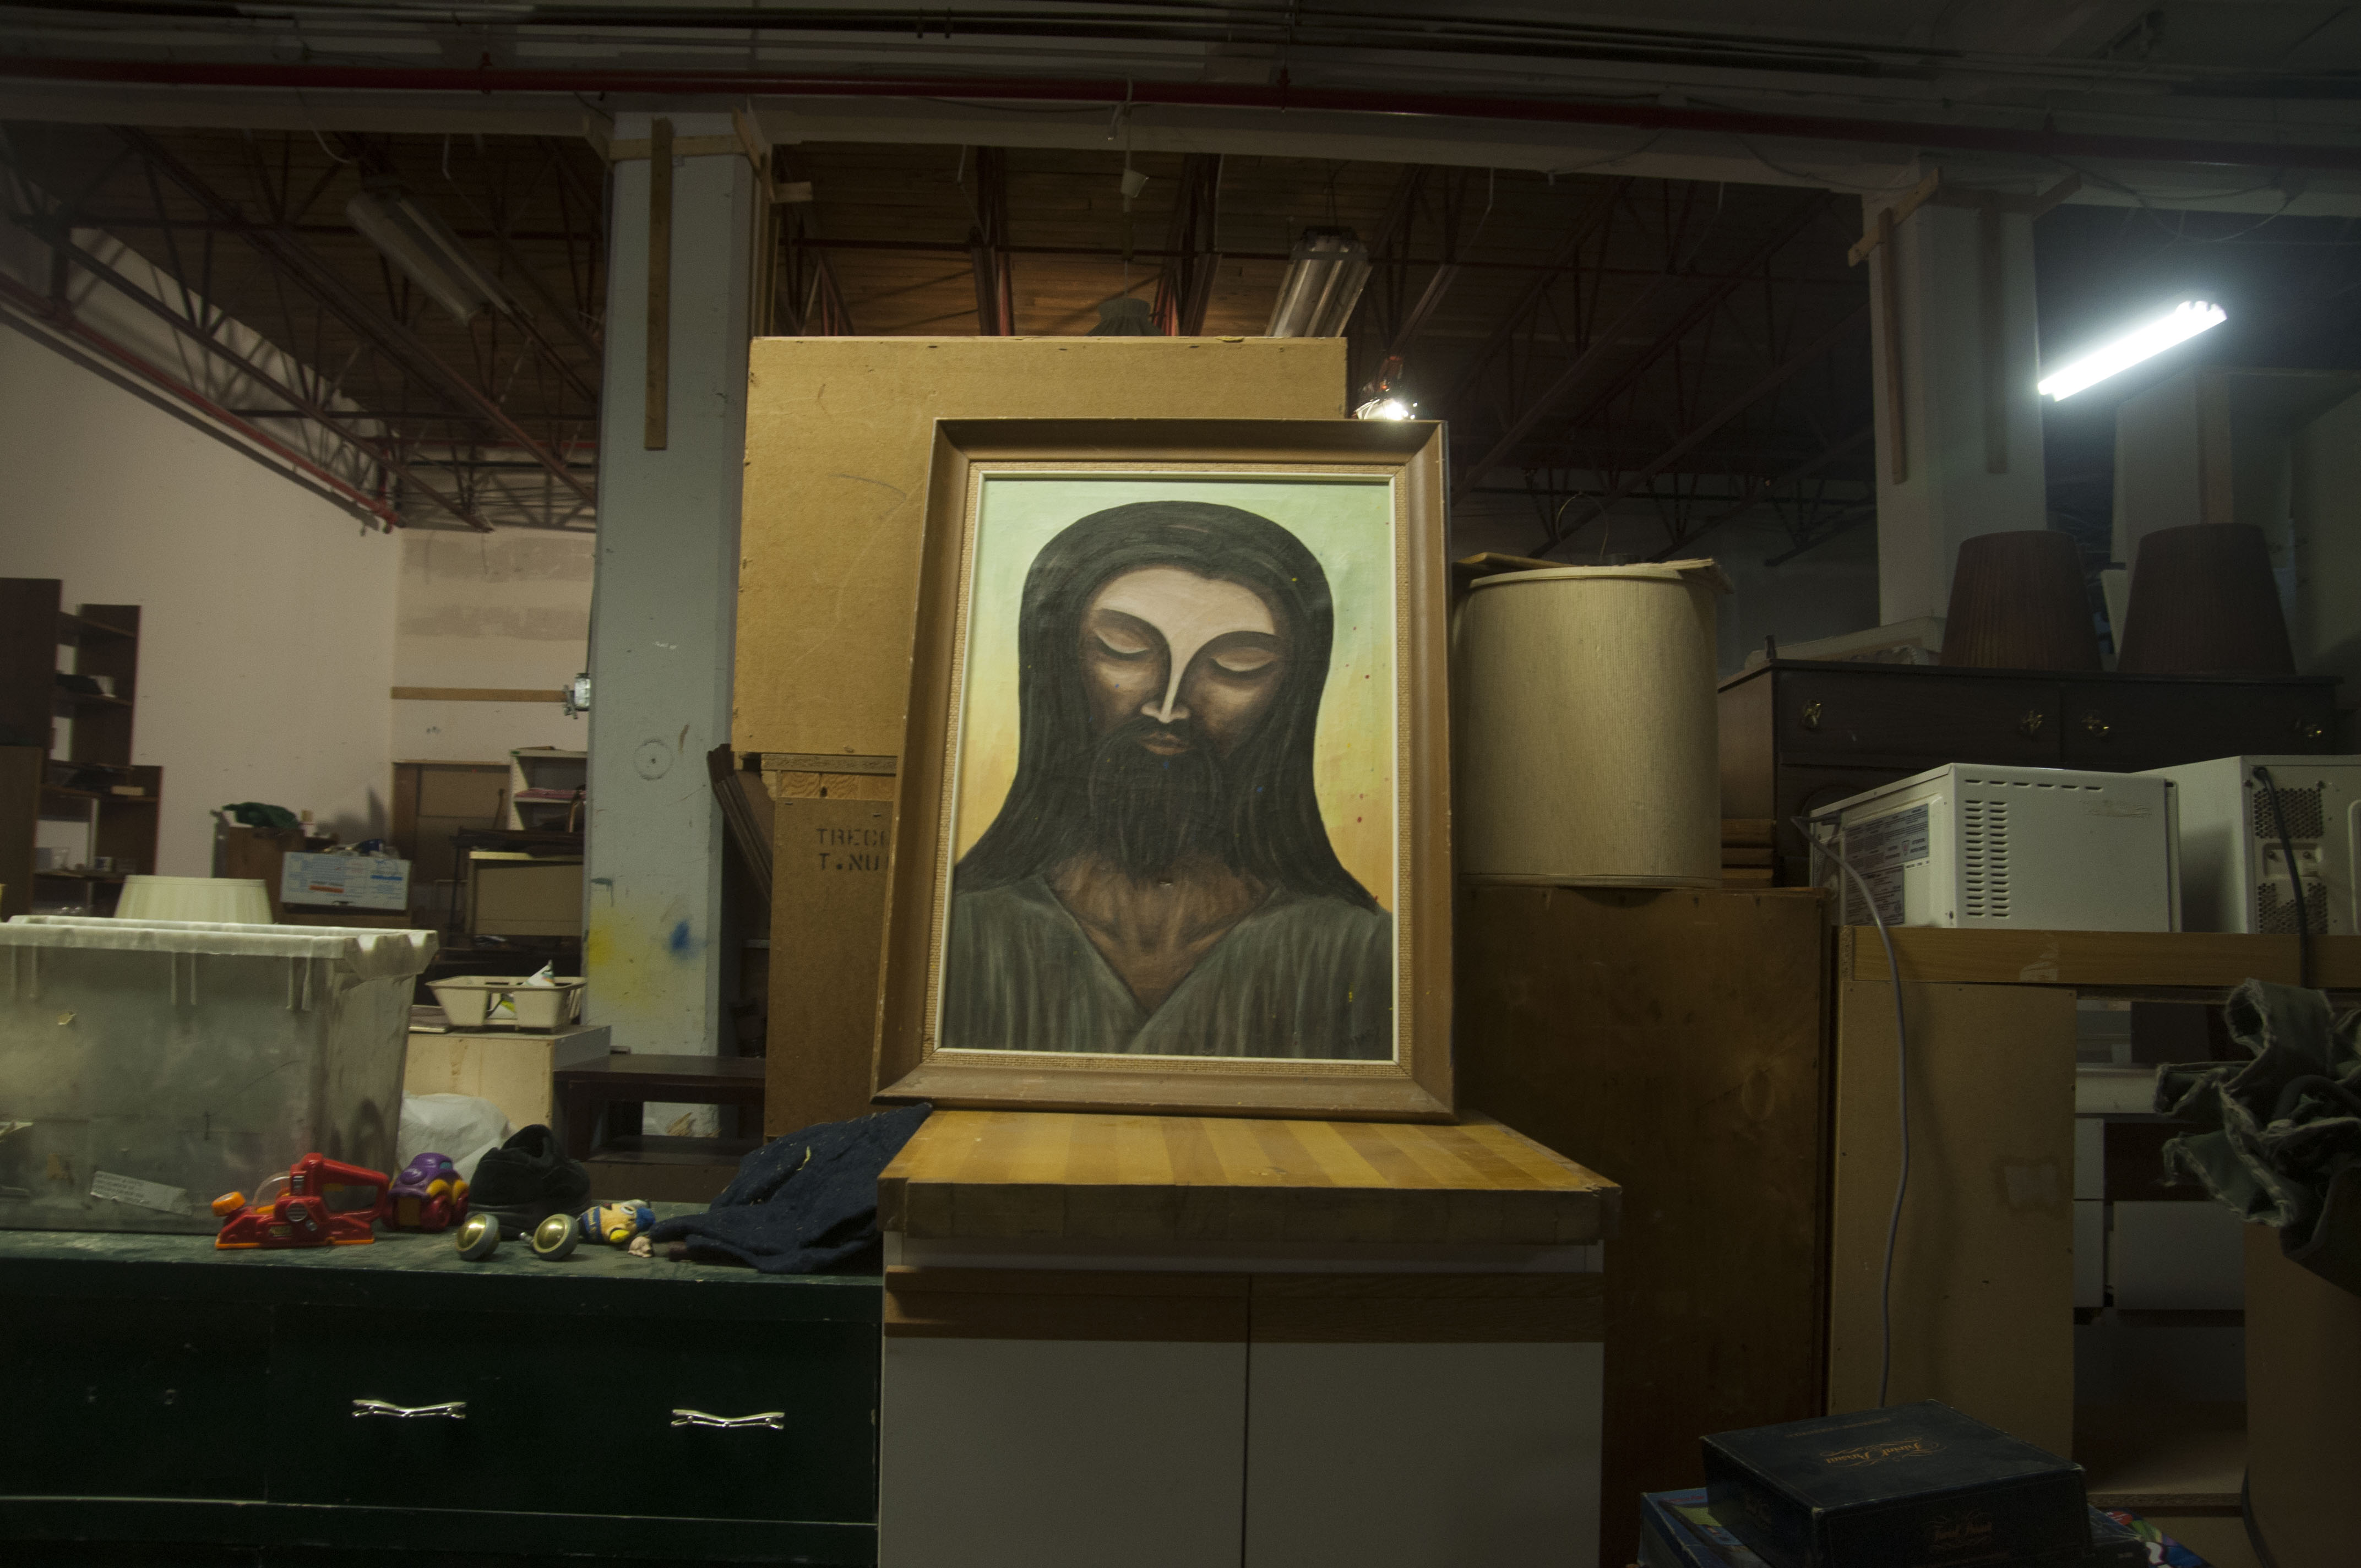 Wilson sells art, too.